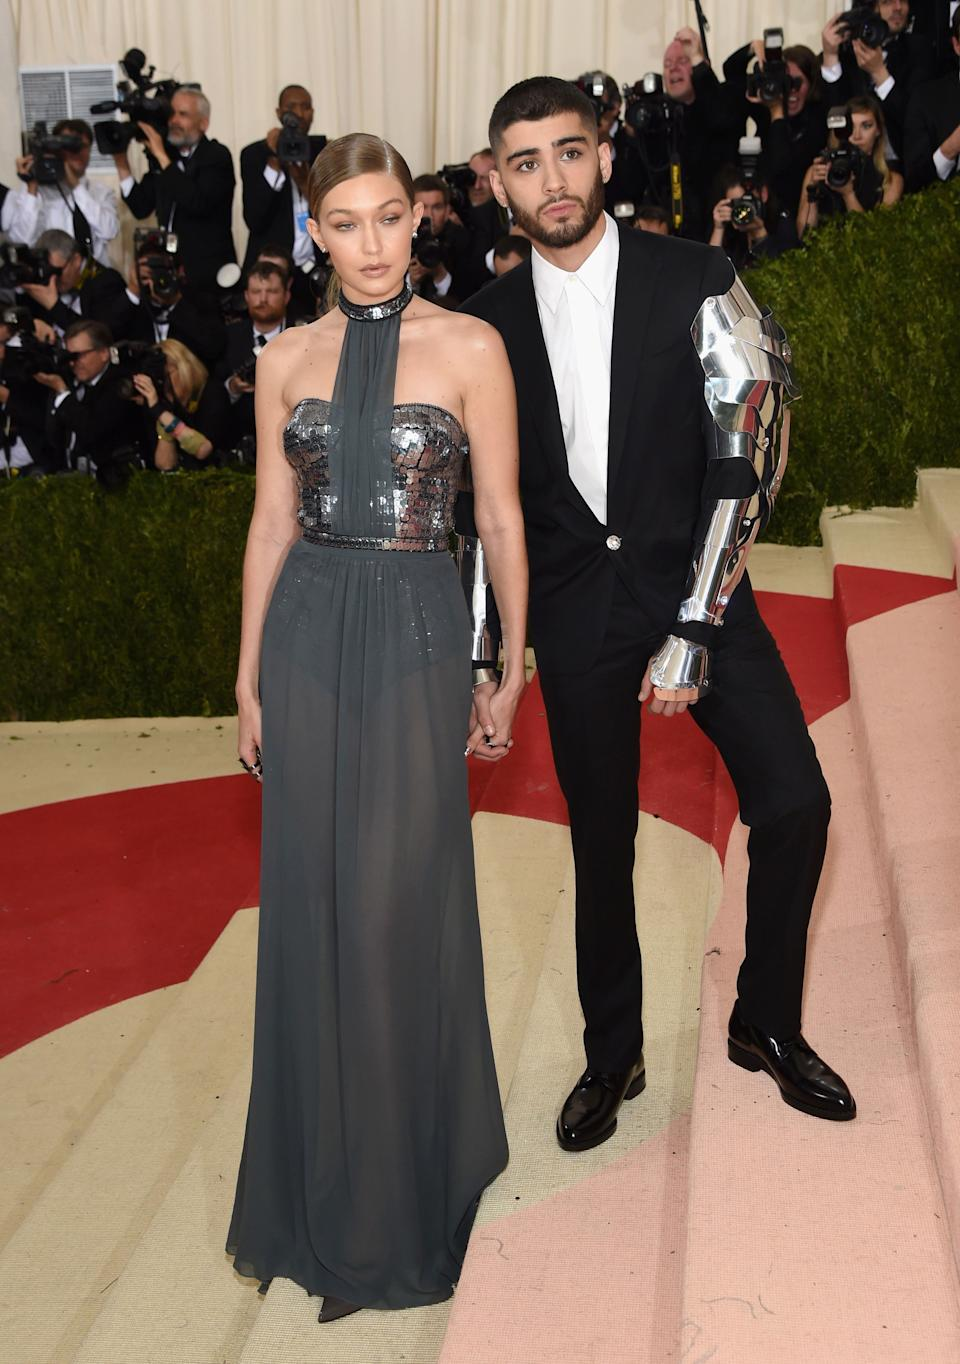 """<h1 class=""""title"""">Gigi Hadid in a Tommy Hilfiger dress and Lynn Ban jewelry and Zayn Malik in Versace and Jimmy Choo shoes</h1><cite class=""""credit"""">Photo: Getty Images</cite>"""